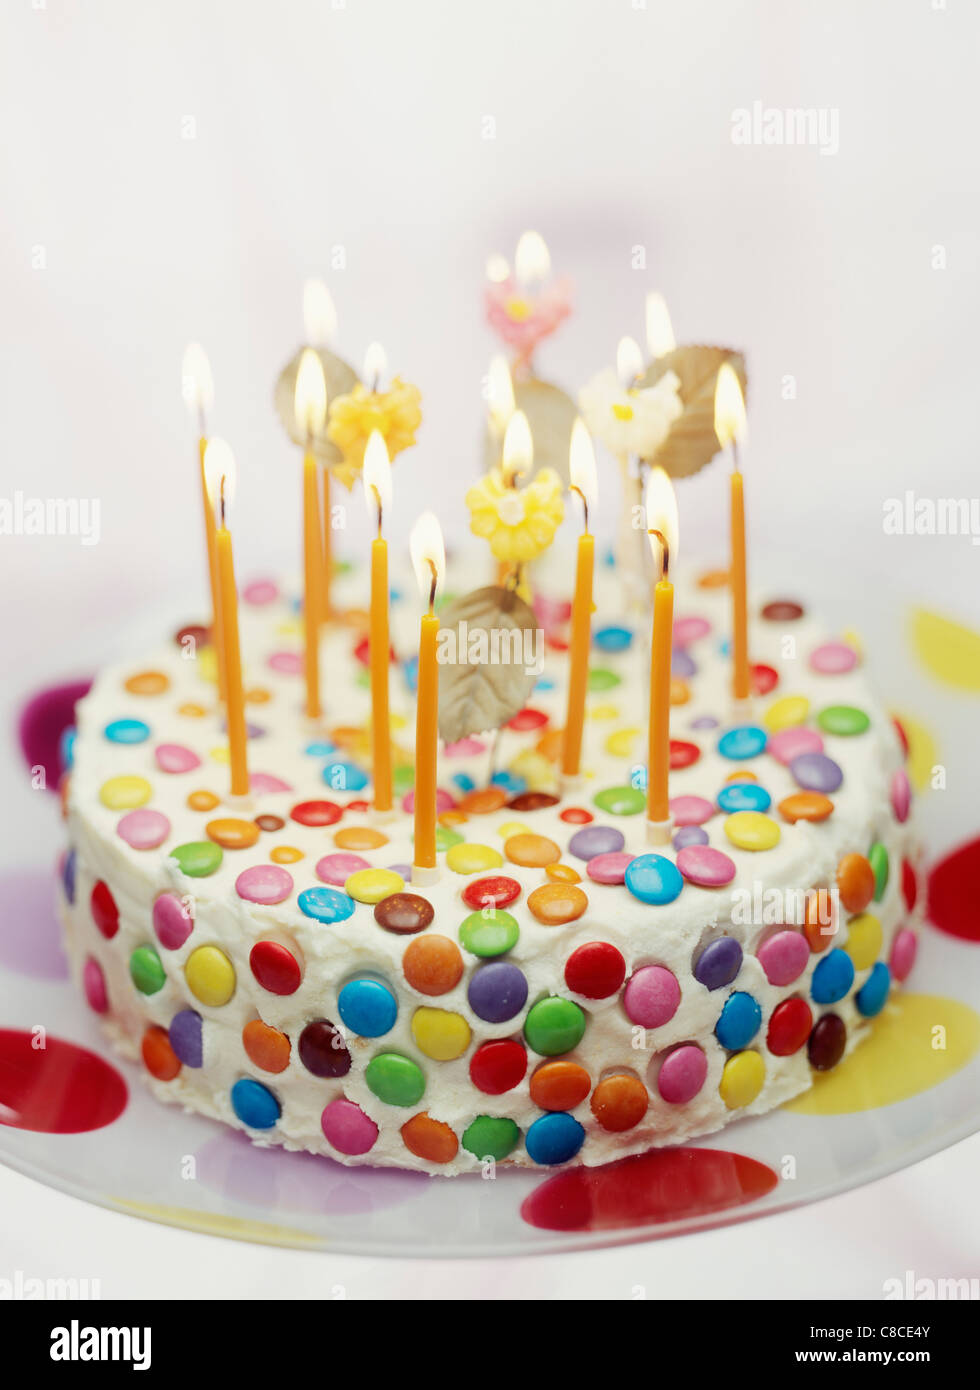 Gâteau d'anniversaire multicolores Photo Stock